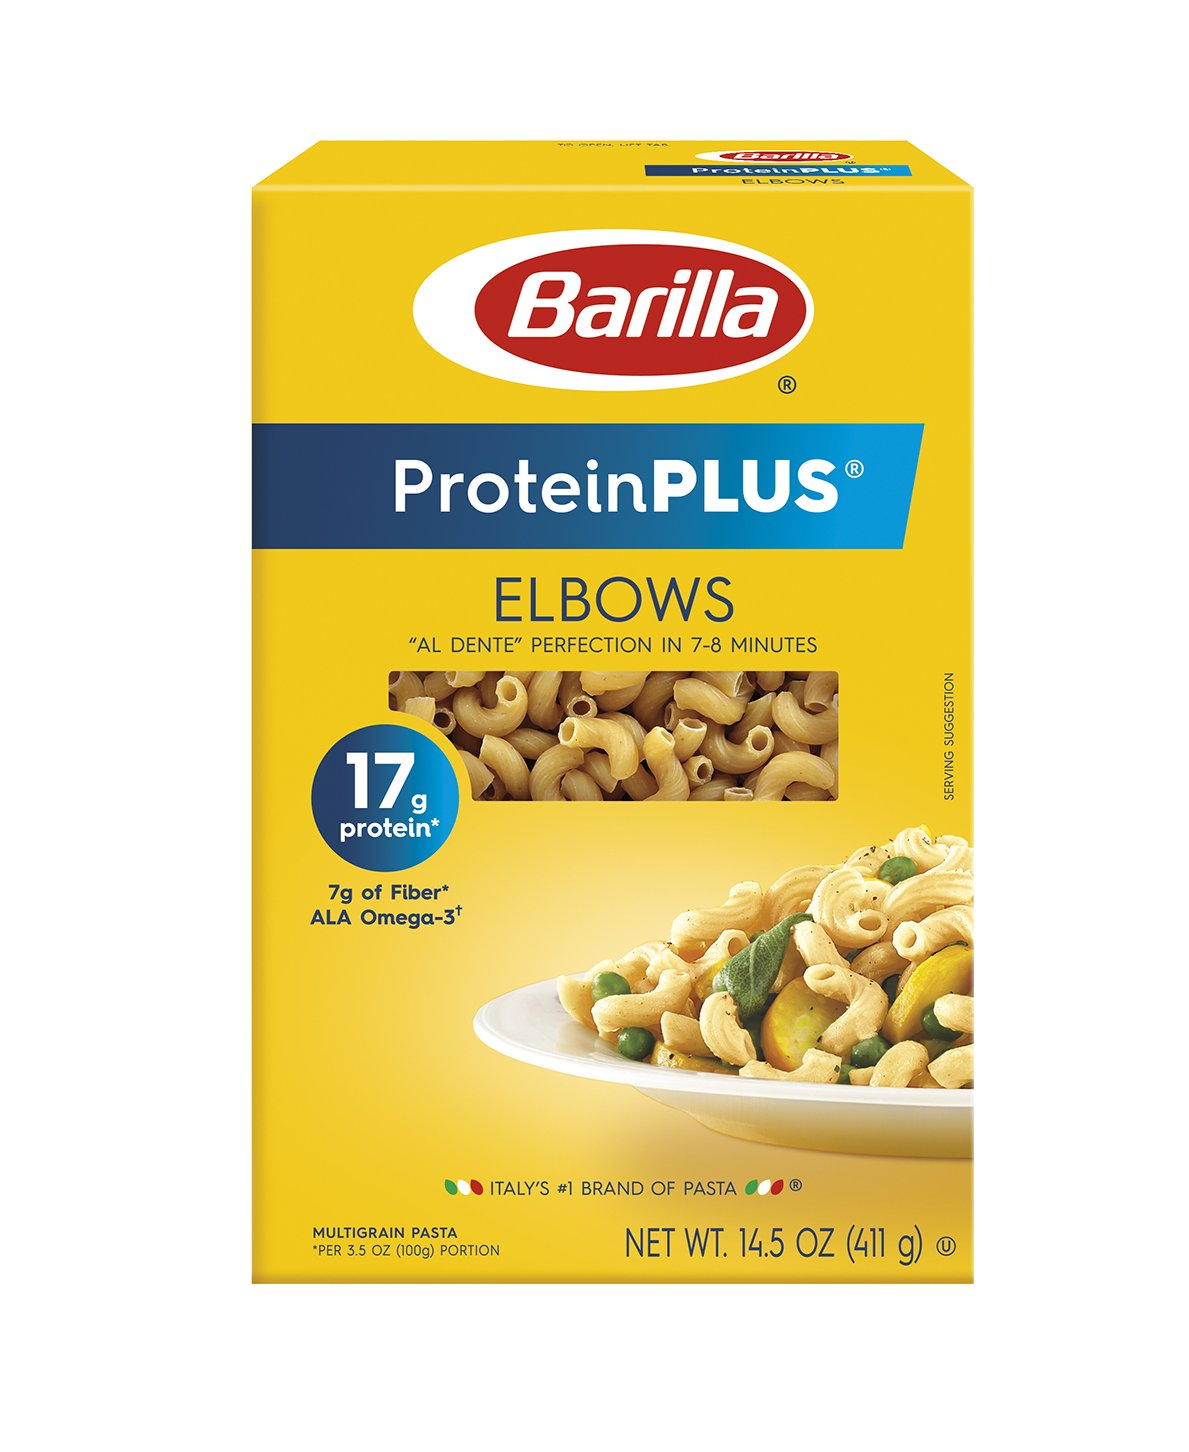 Barilla ProteinPLUS Multigrain Elbows Pasta, High Protein Pasta, 14.5 Ounce (Pack of 8)